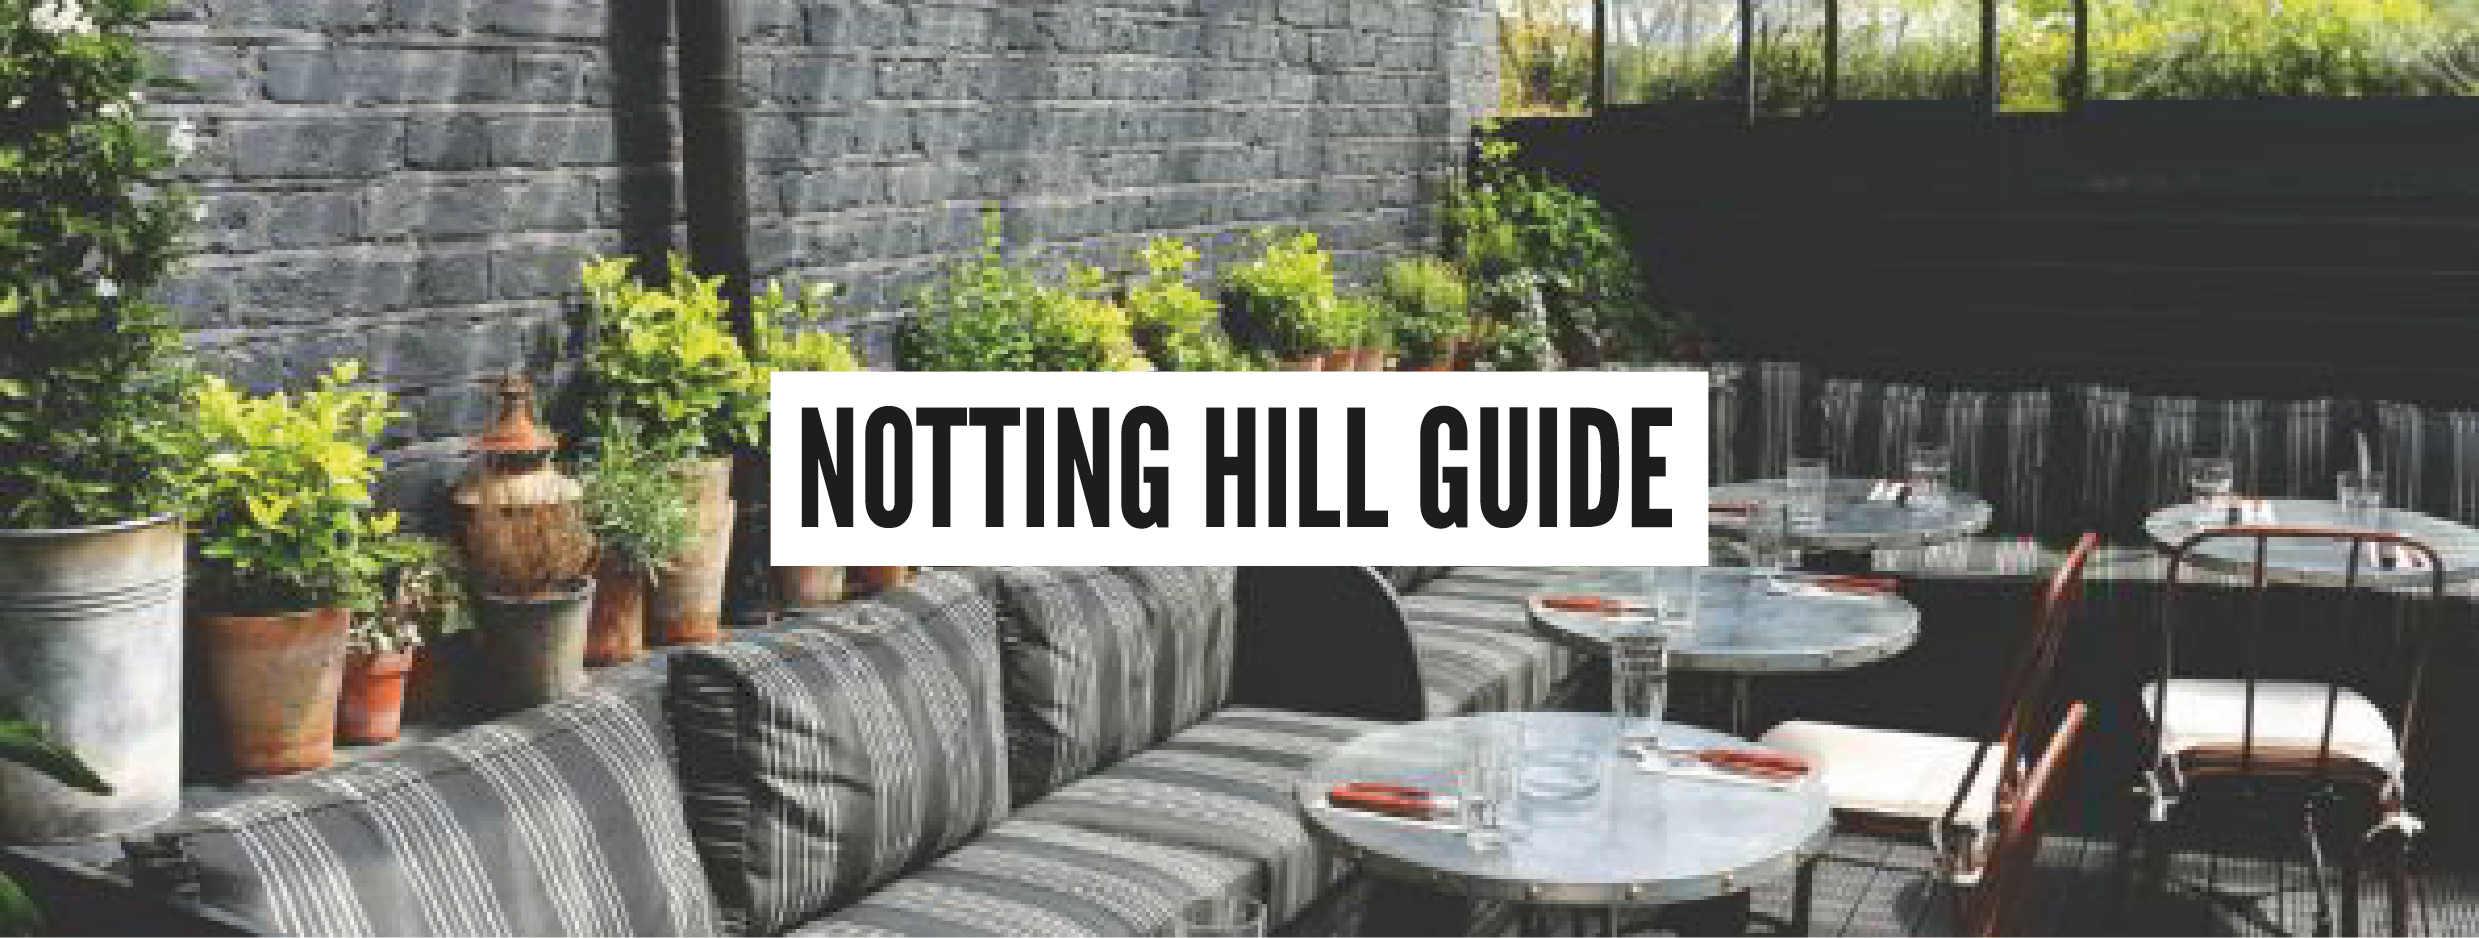 London Neighbourhood Guides - Notting Hill